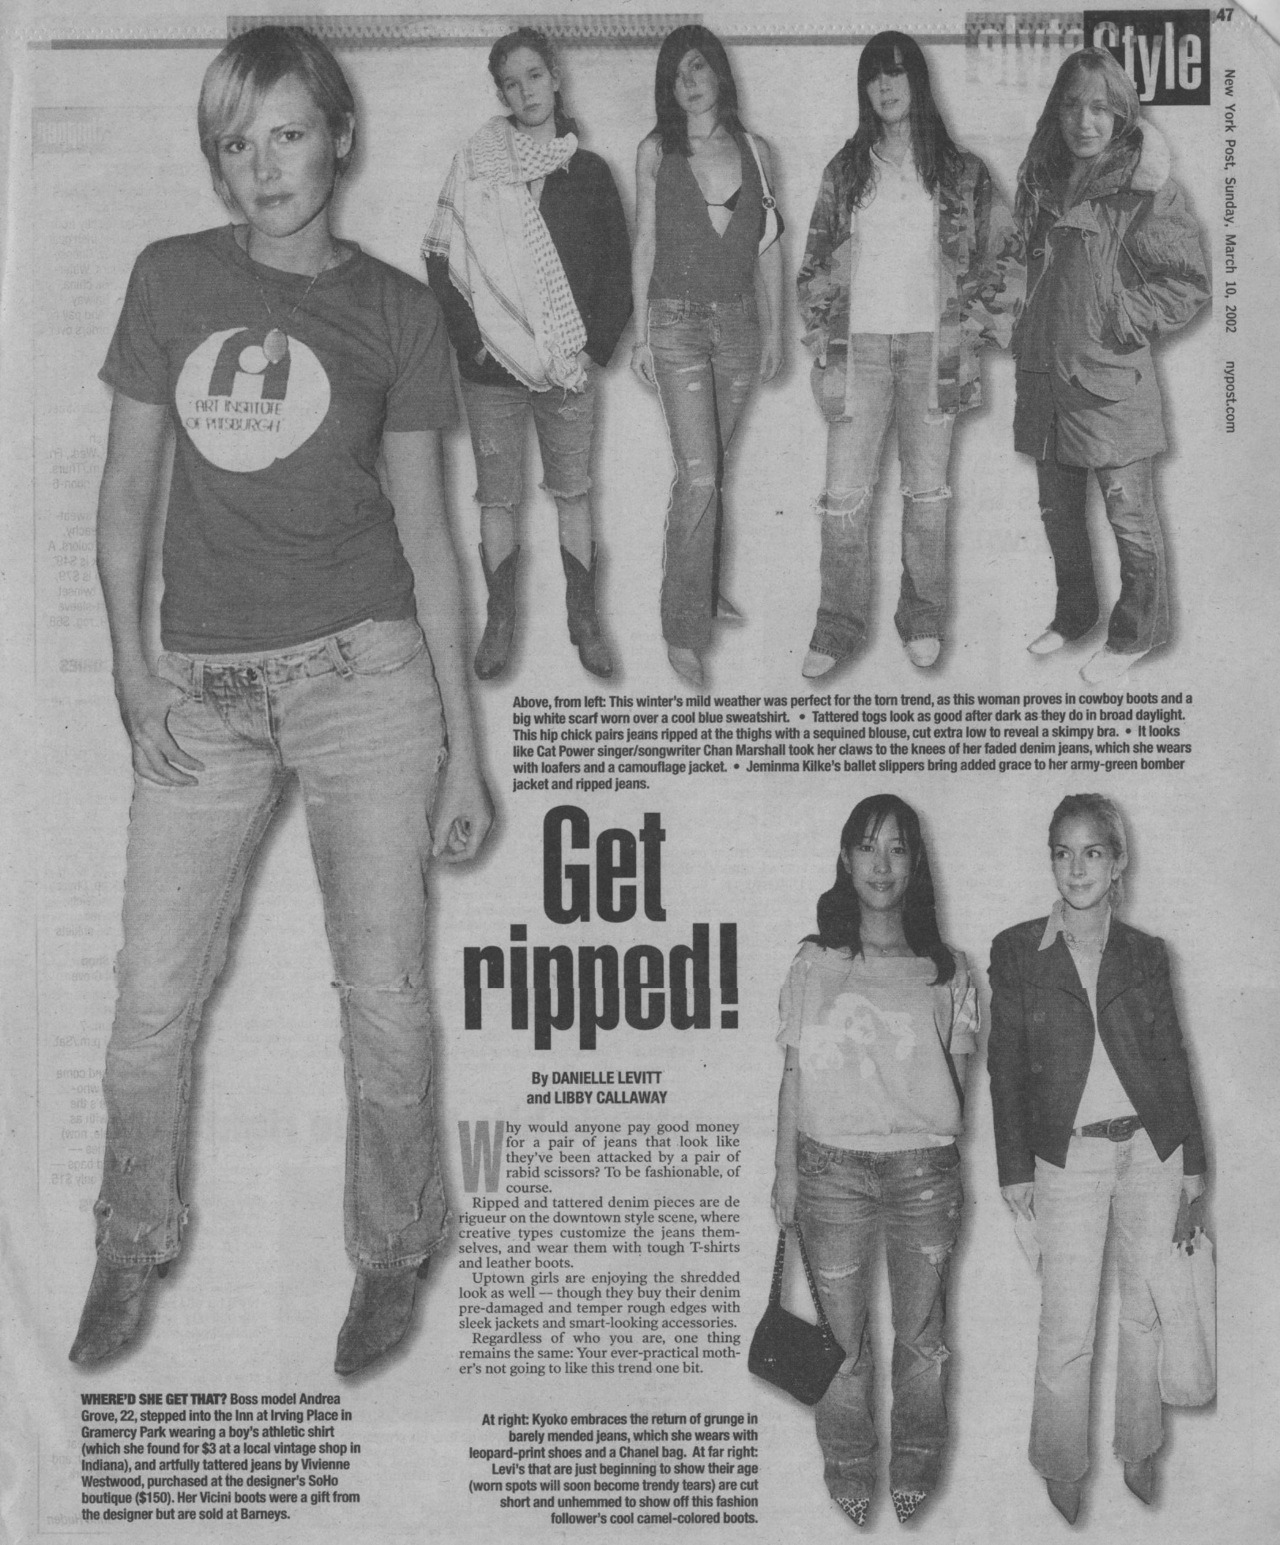 NY POST STREET FASHION!!!! Ripped Jeans are cute…Ripped jeans made into shorts are even cuter!